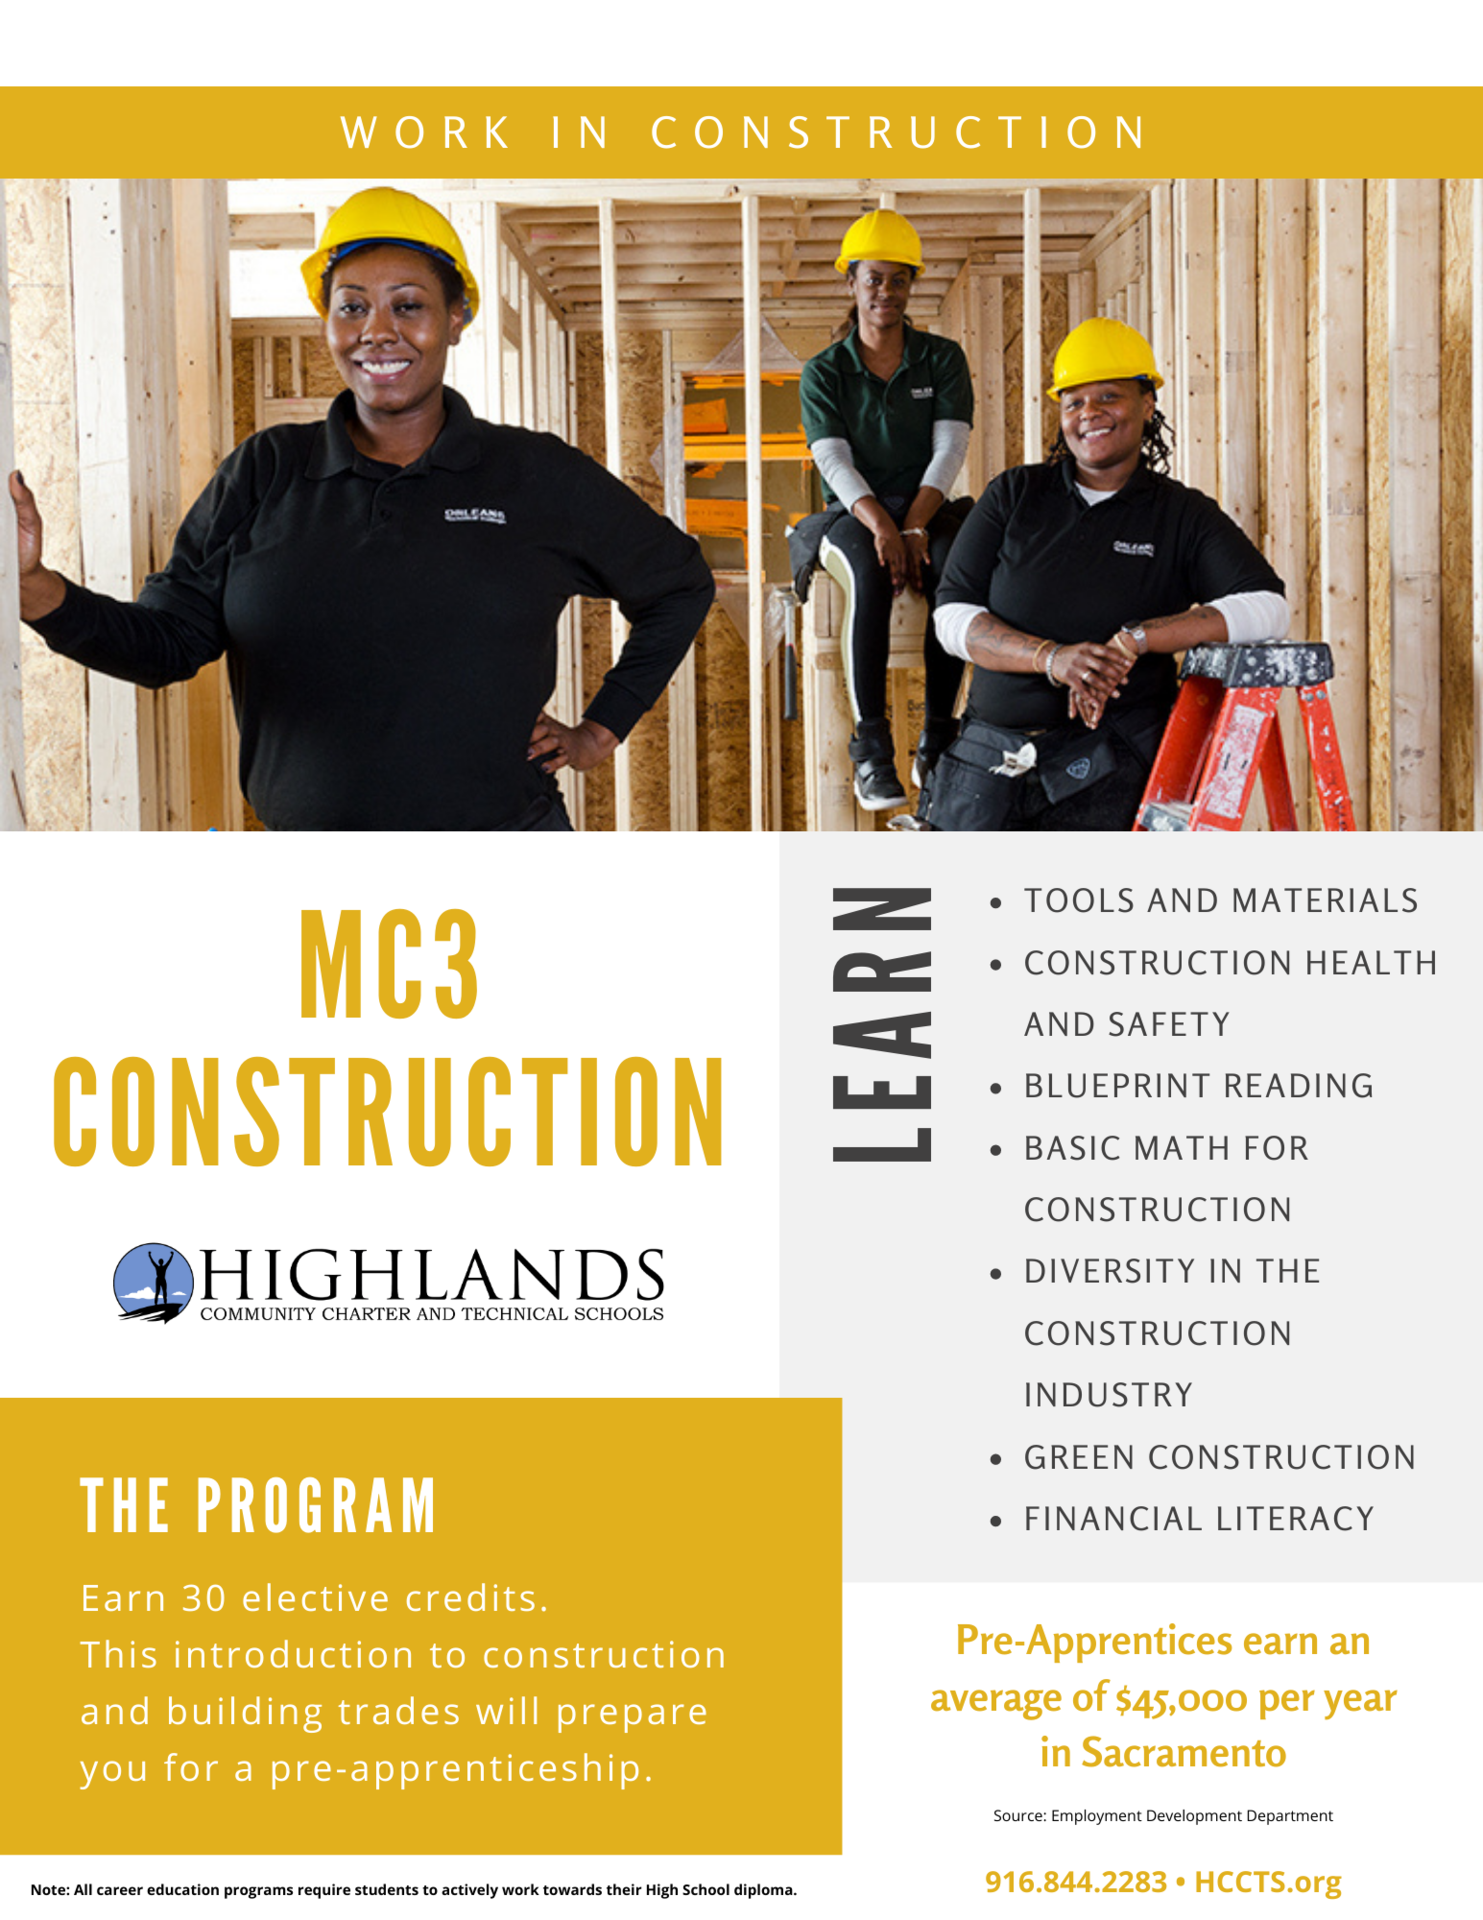 MC3 CONSTRUCTION